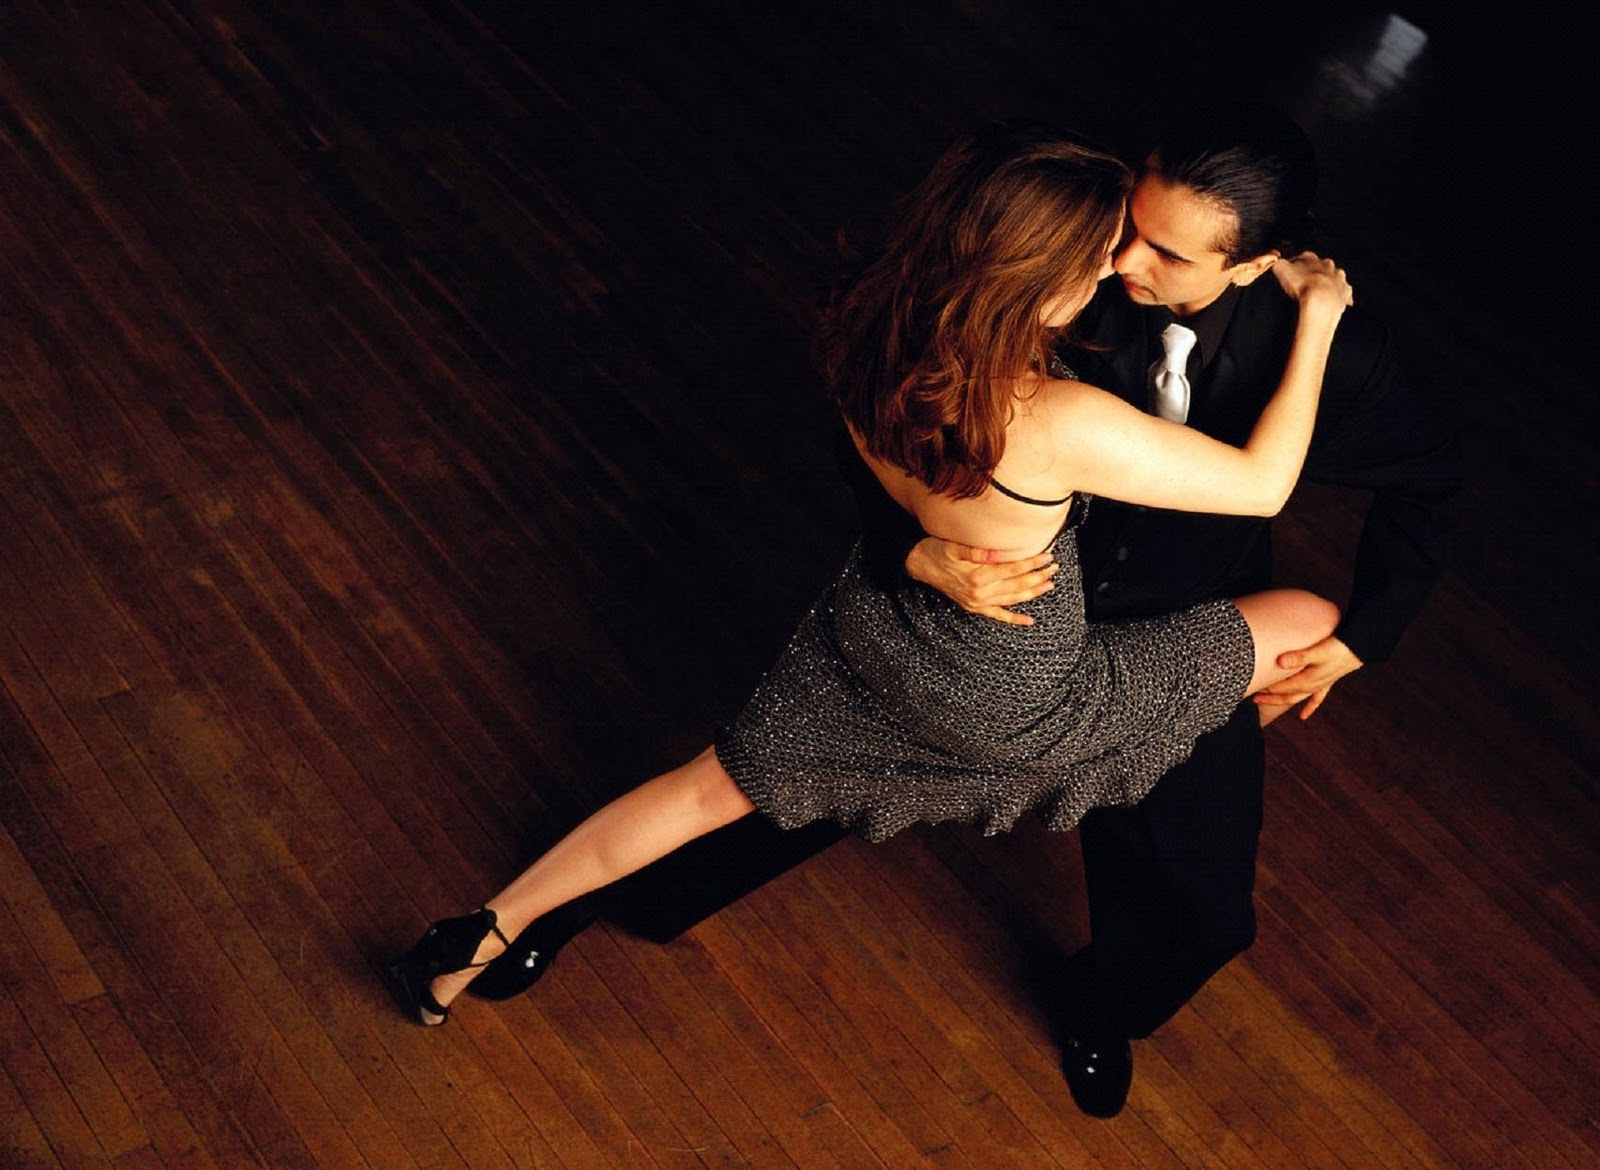 dance-genre-salsa-16-couple-holding-each-other